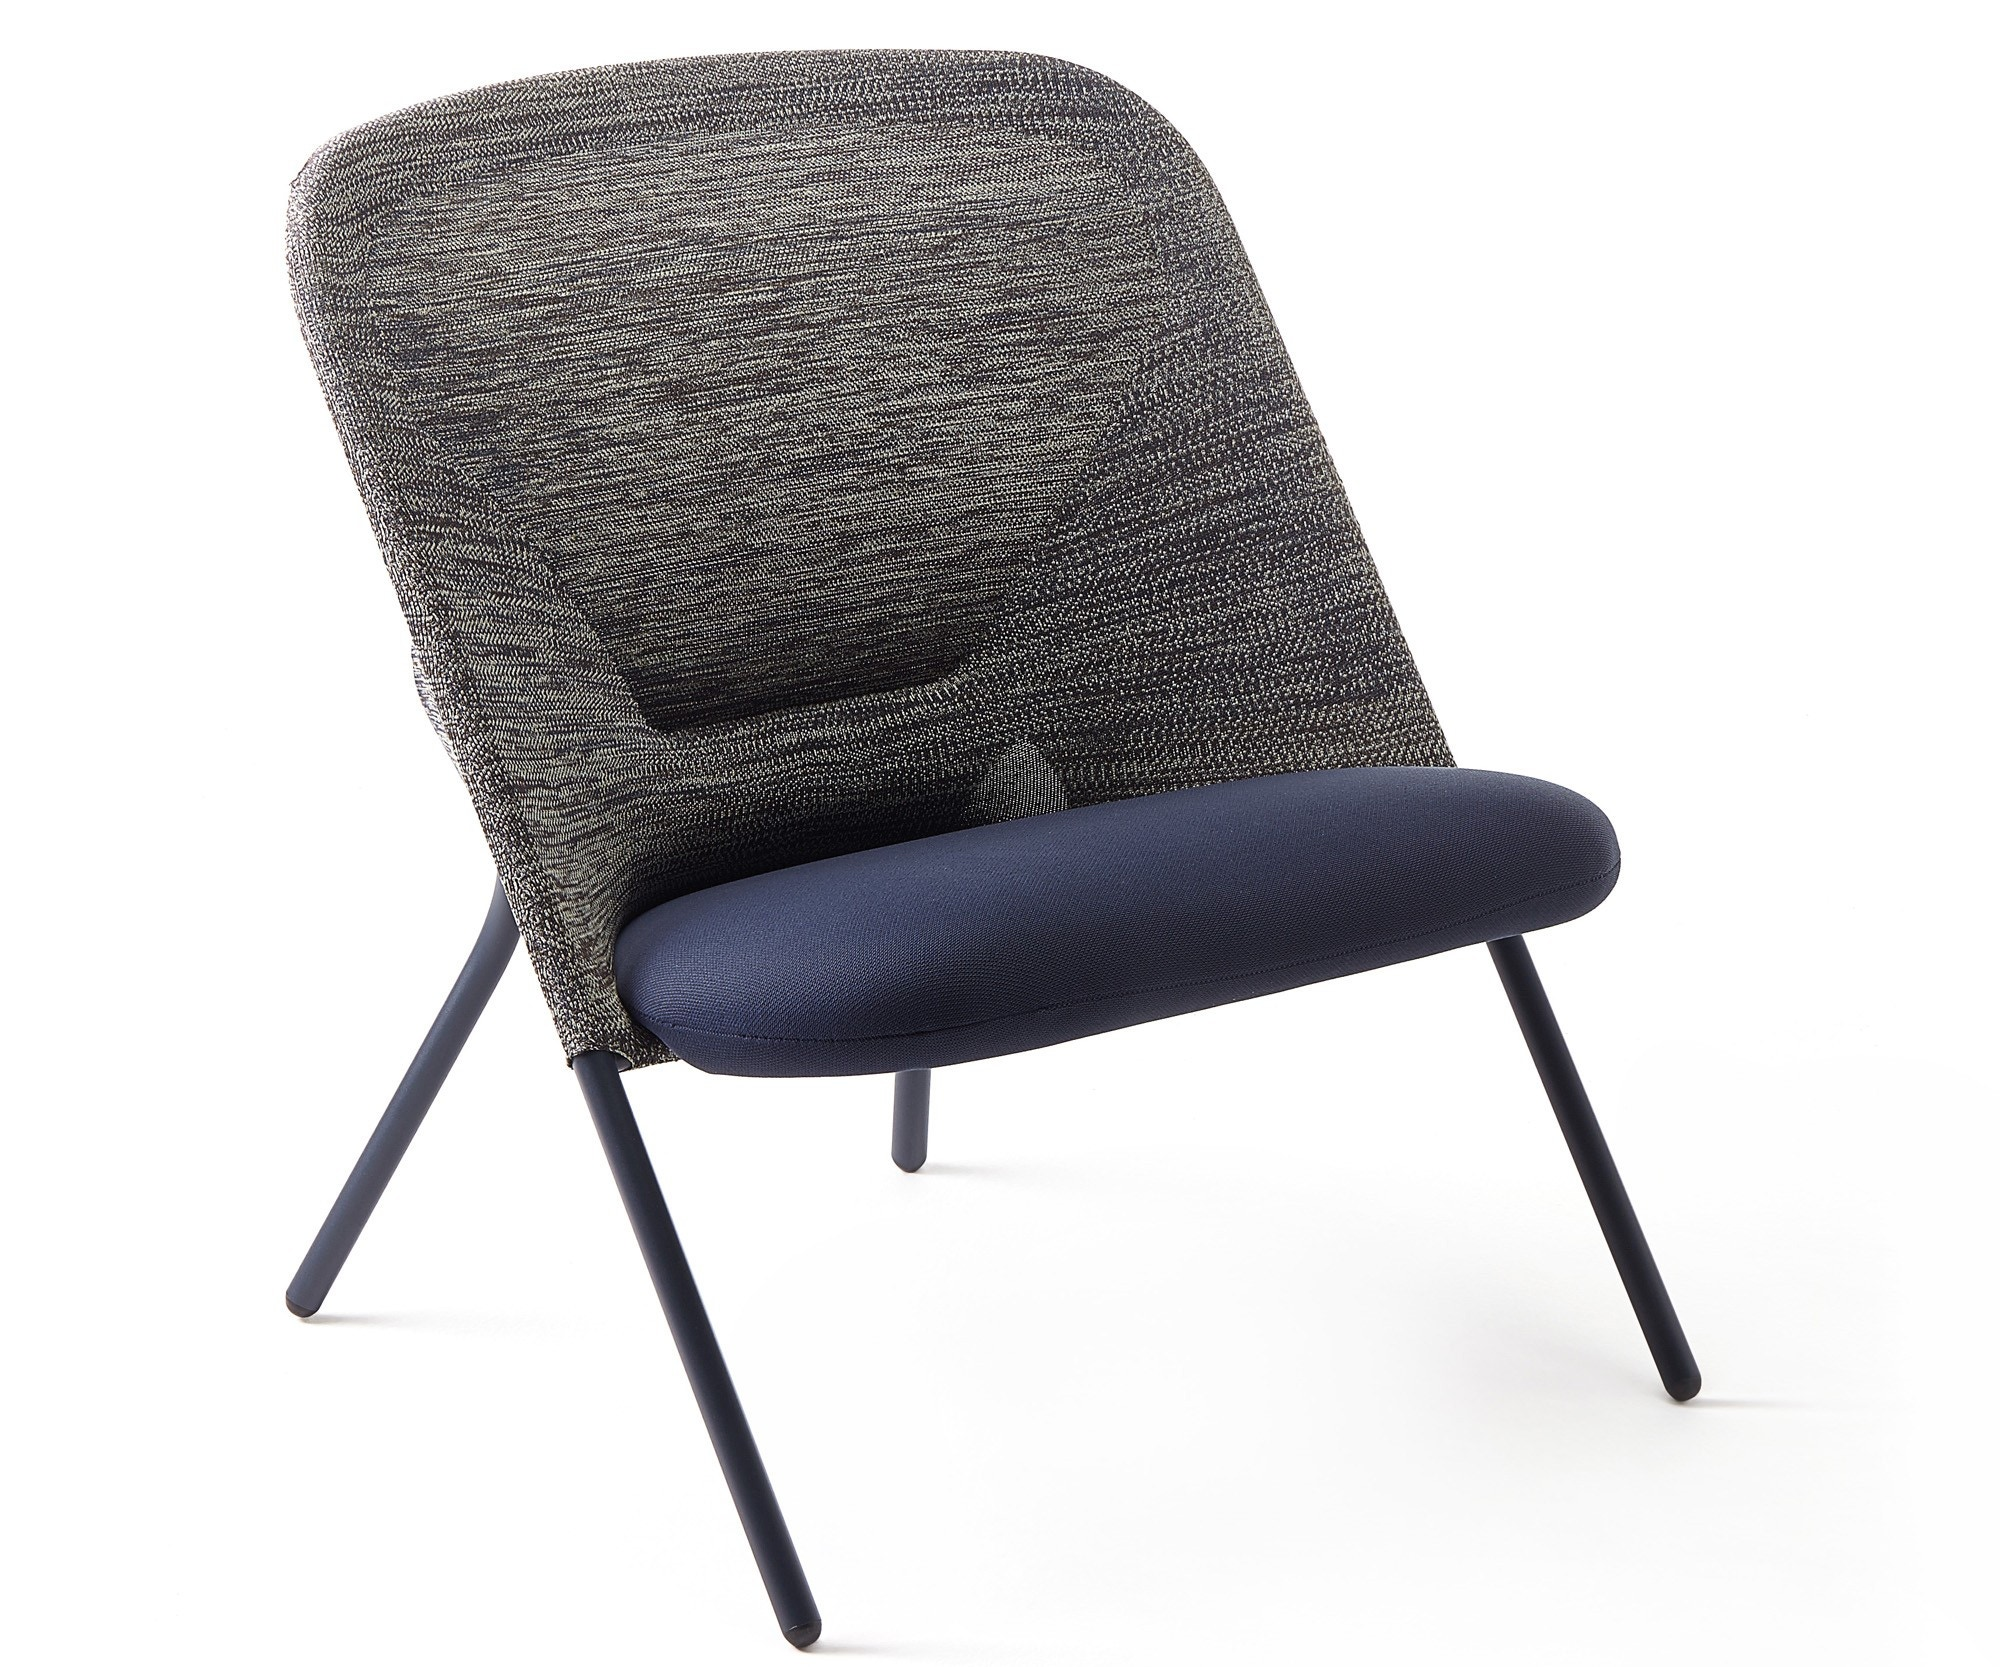 Moooi Shift Foldable Lounge Chair